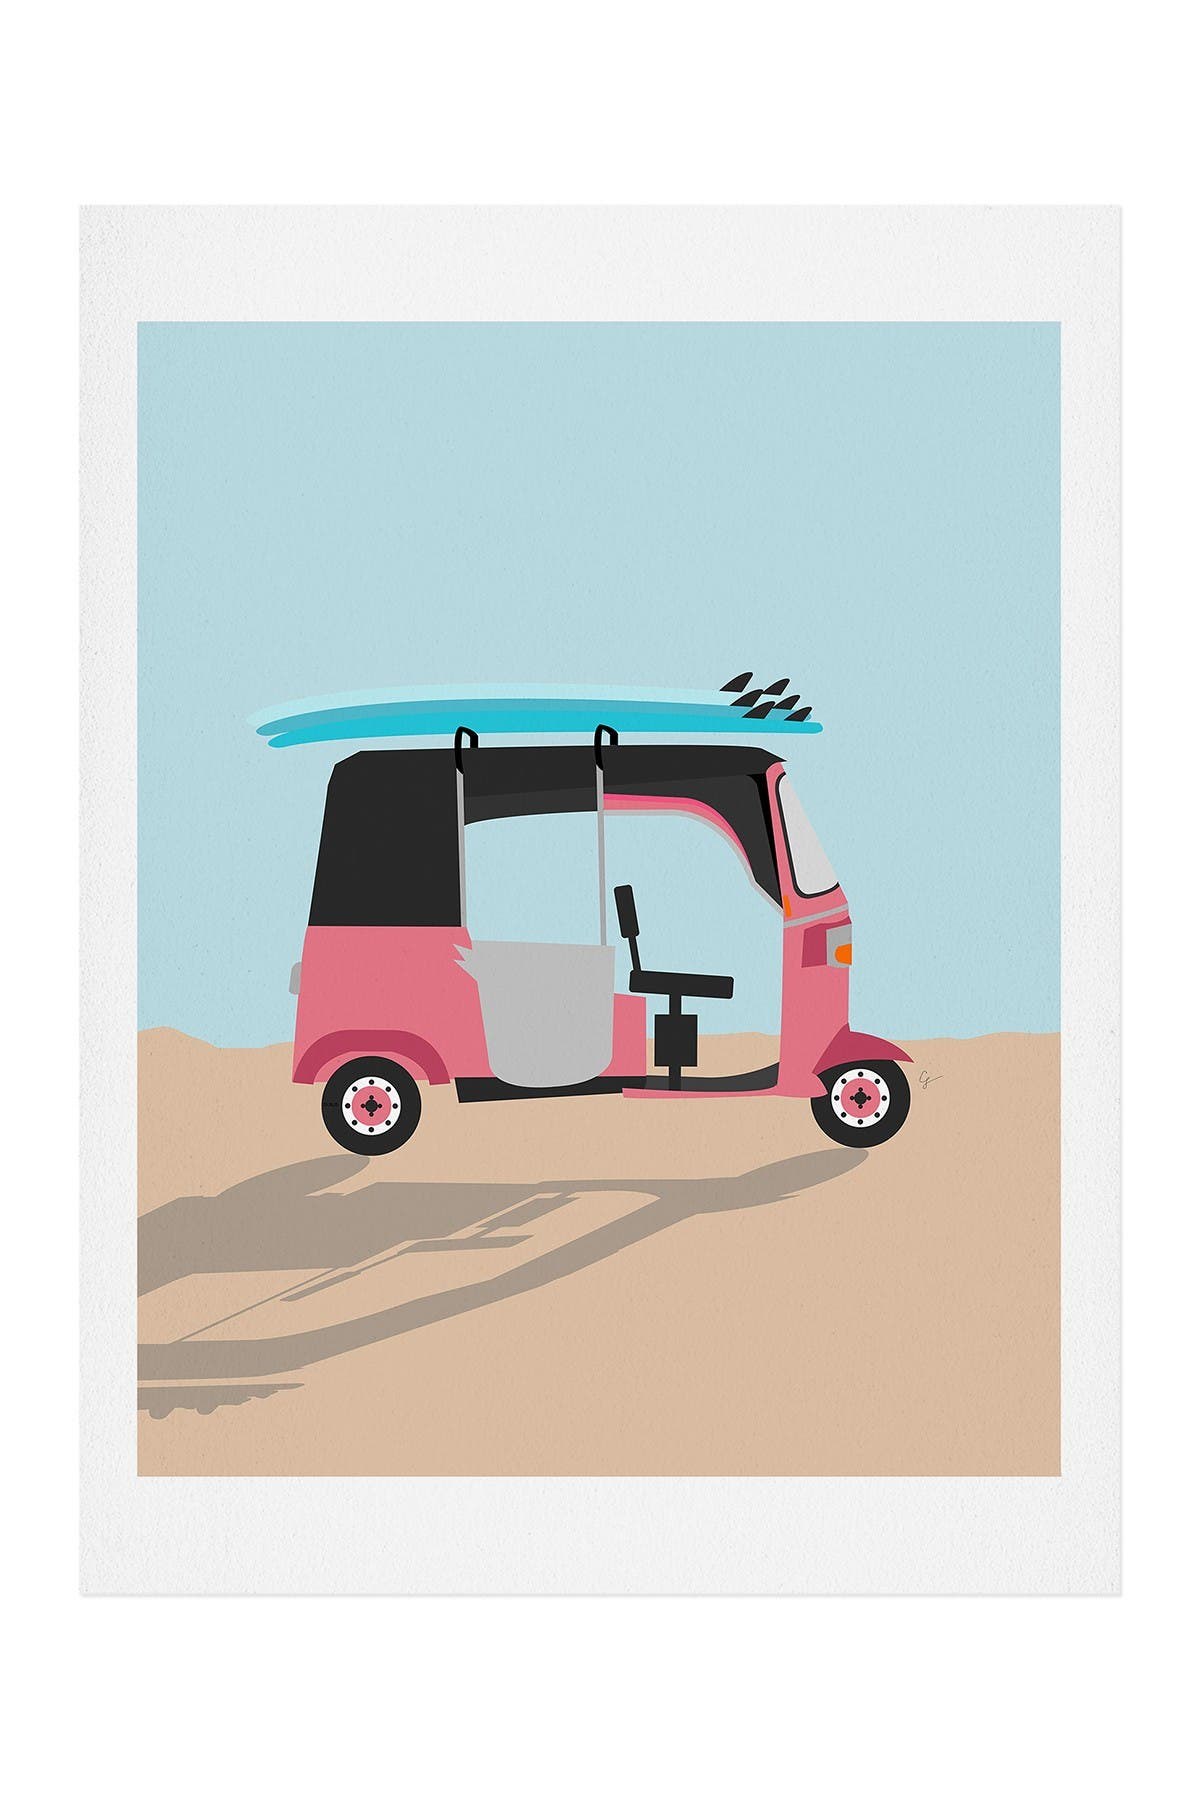 Image of Deny Designs Lyman Creative Co Surf Tuk Tuk in Sri Lanka Art Print